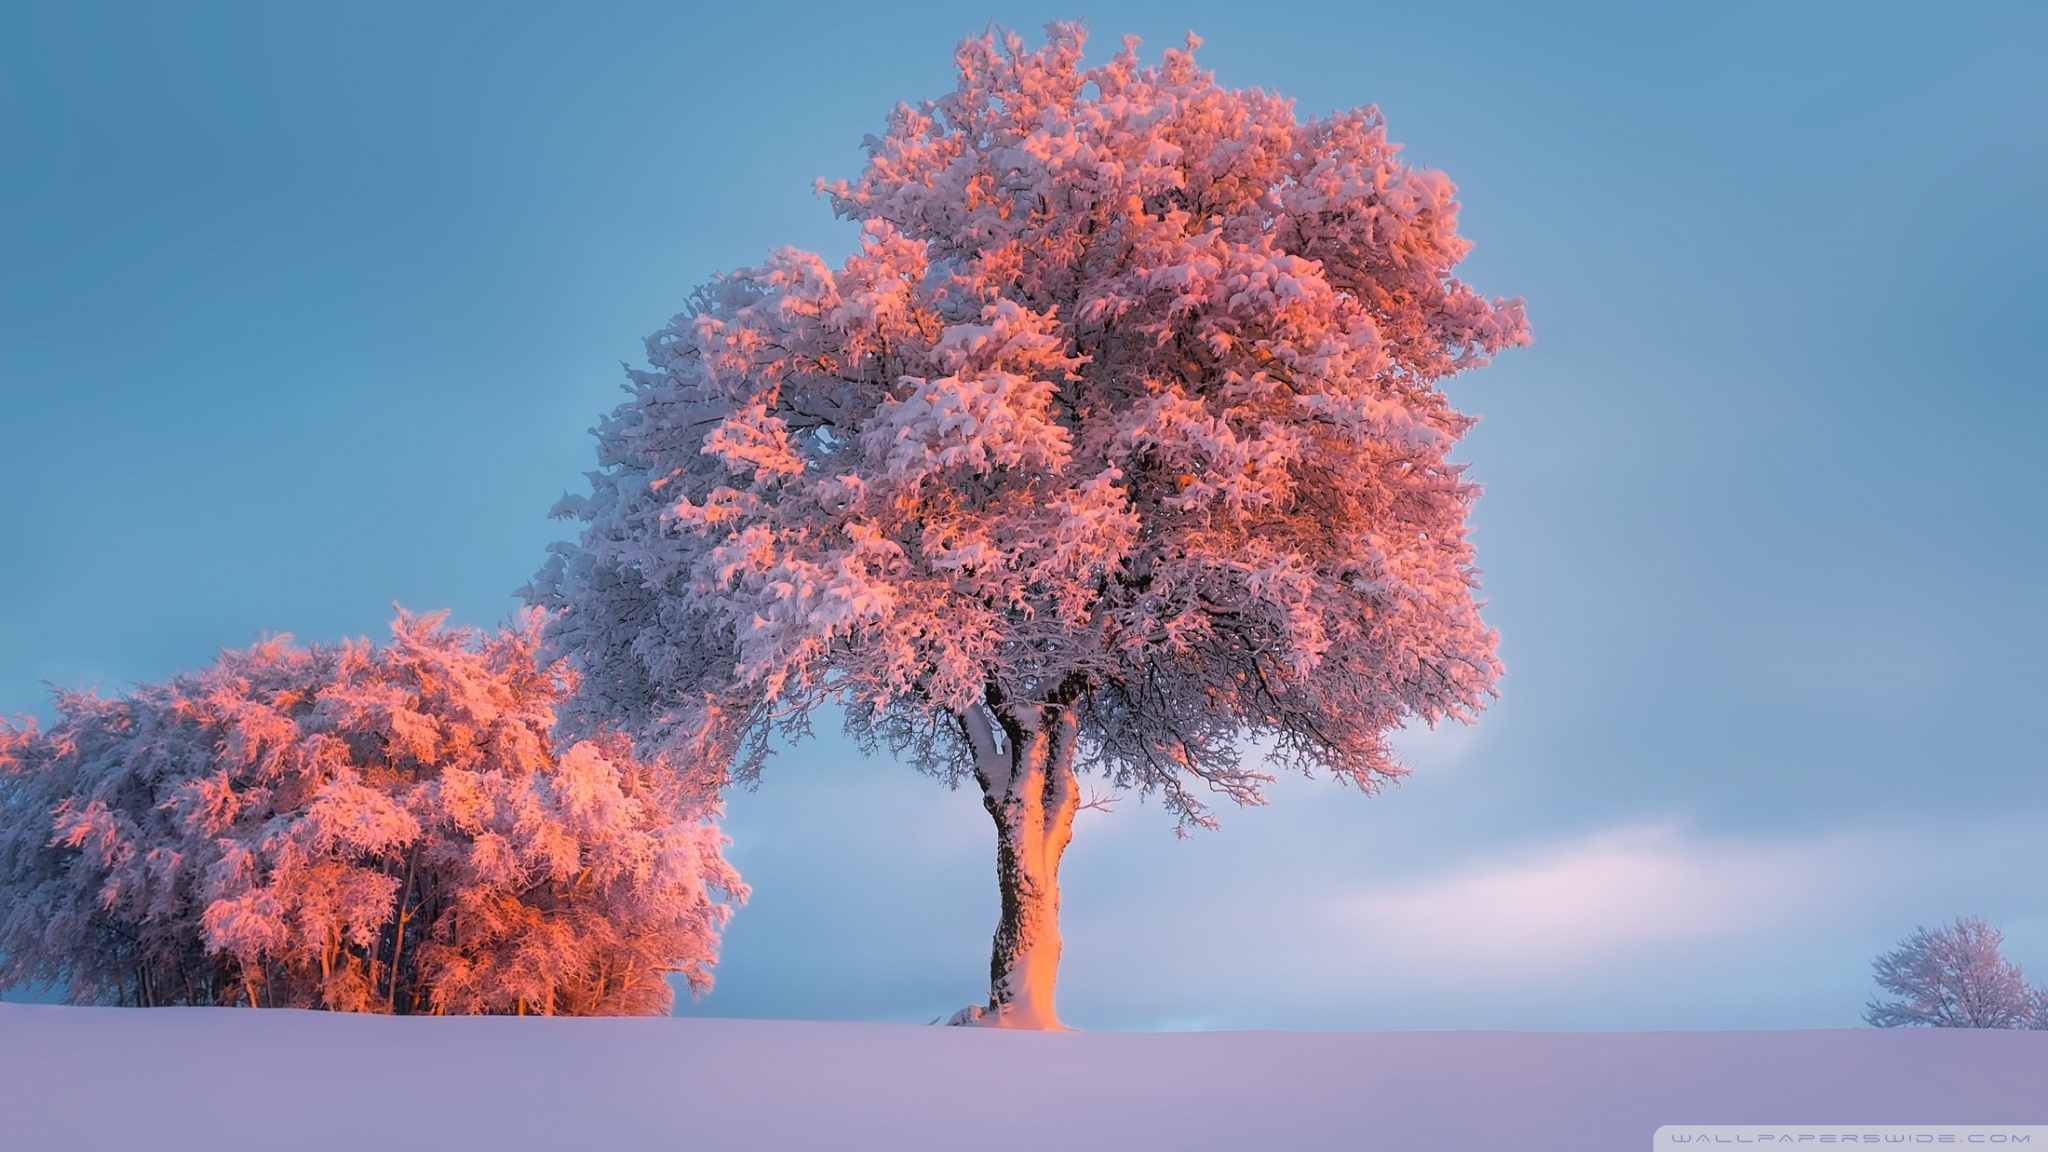 Trees Winter Pink Sunset Hd Wallpapers